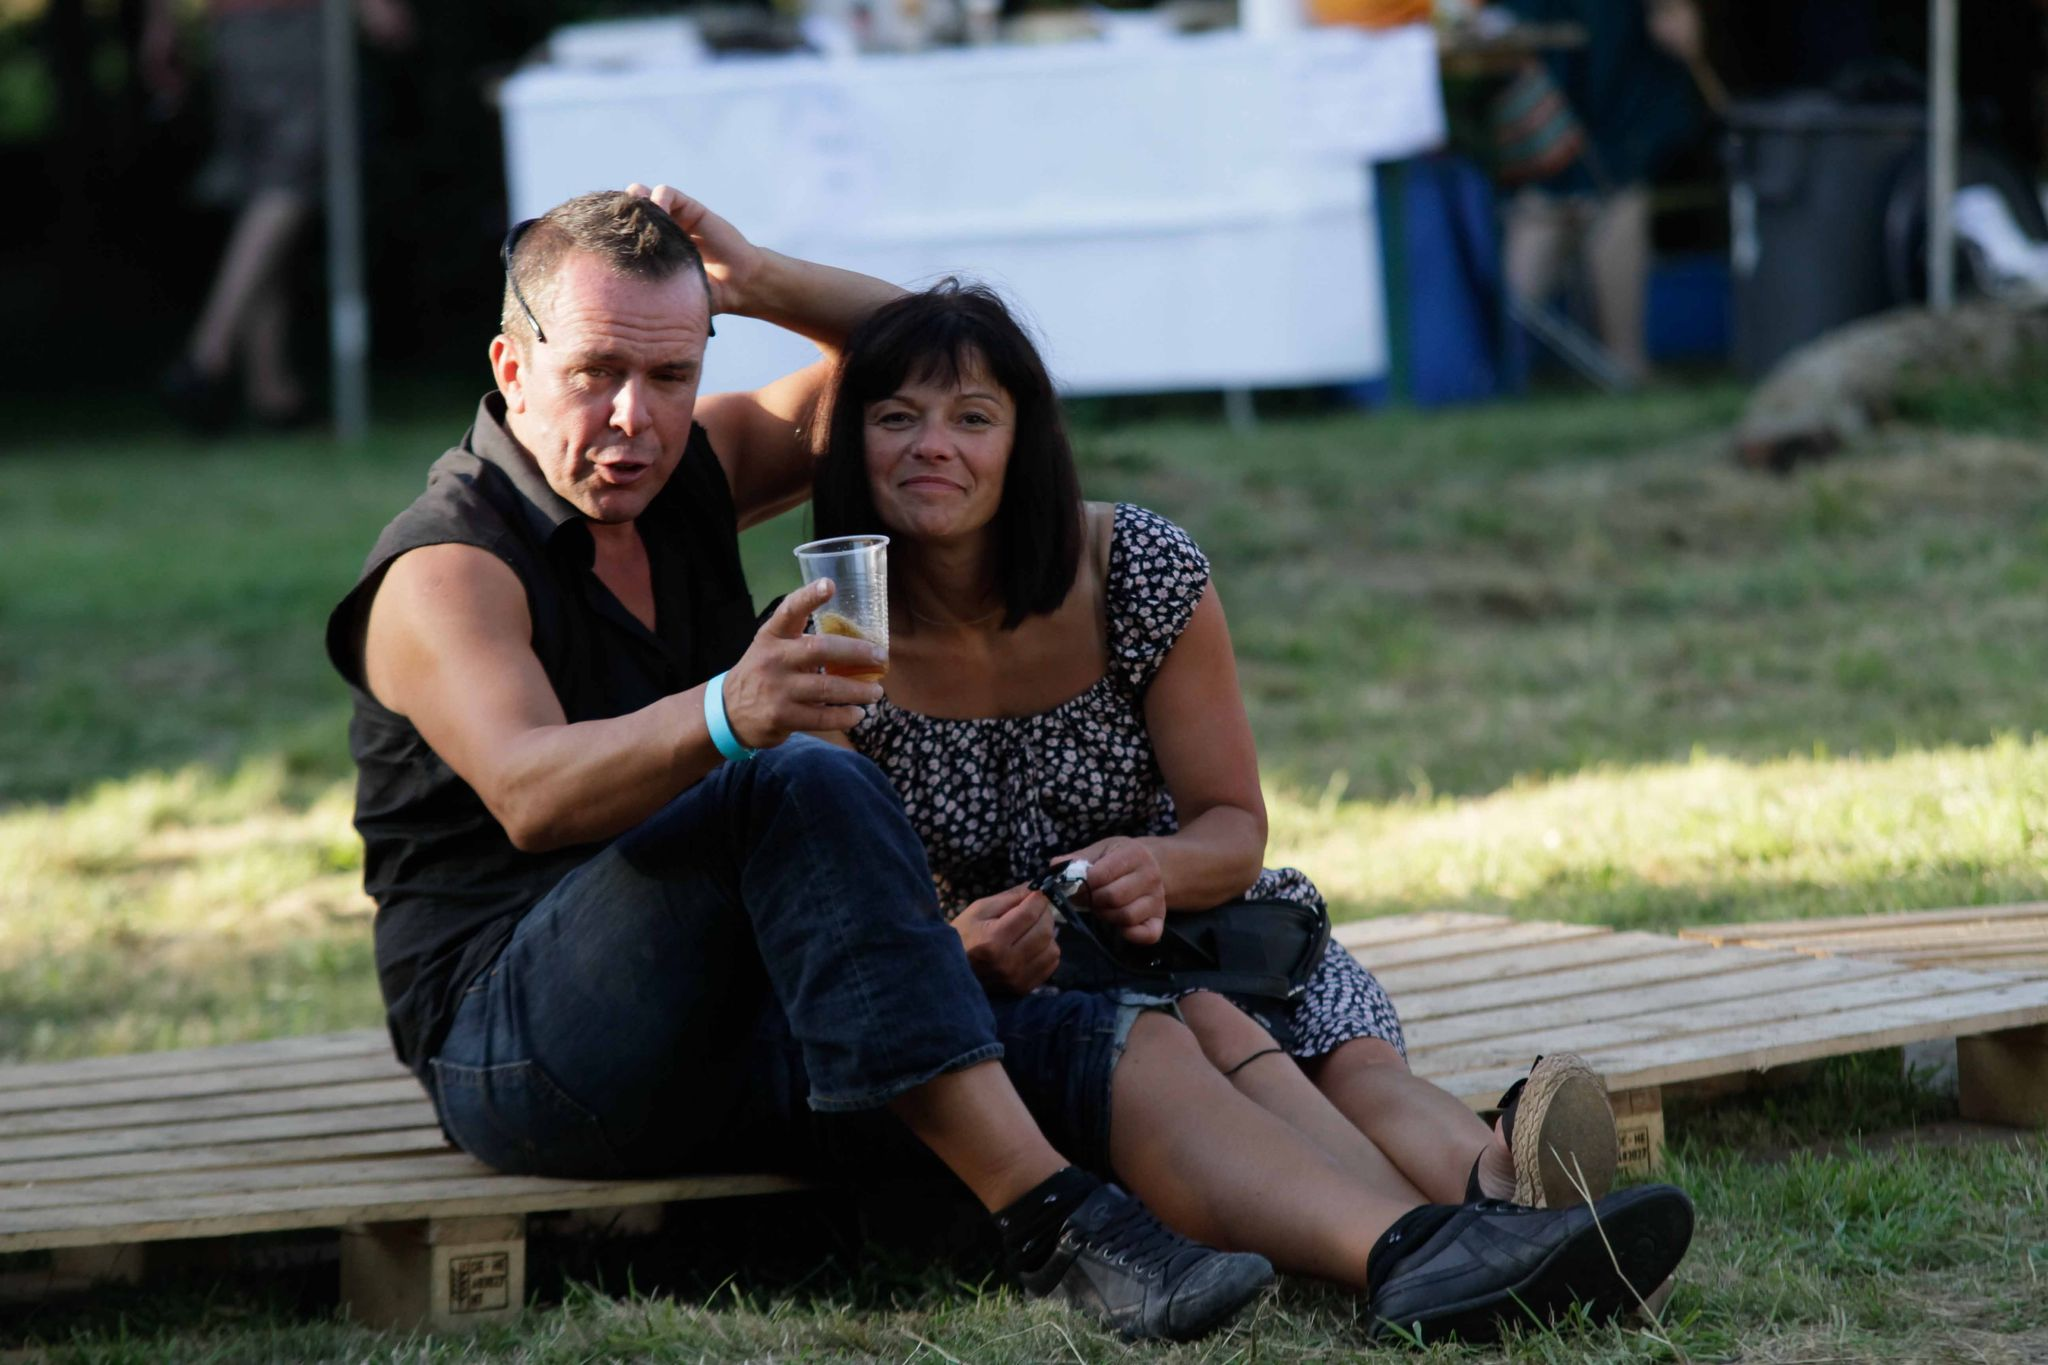 Ambiance-DTGFestival-2012-217